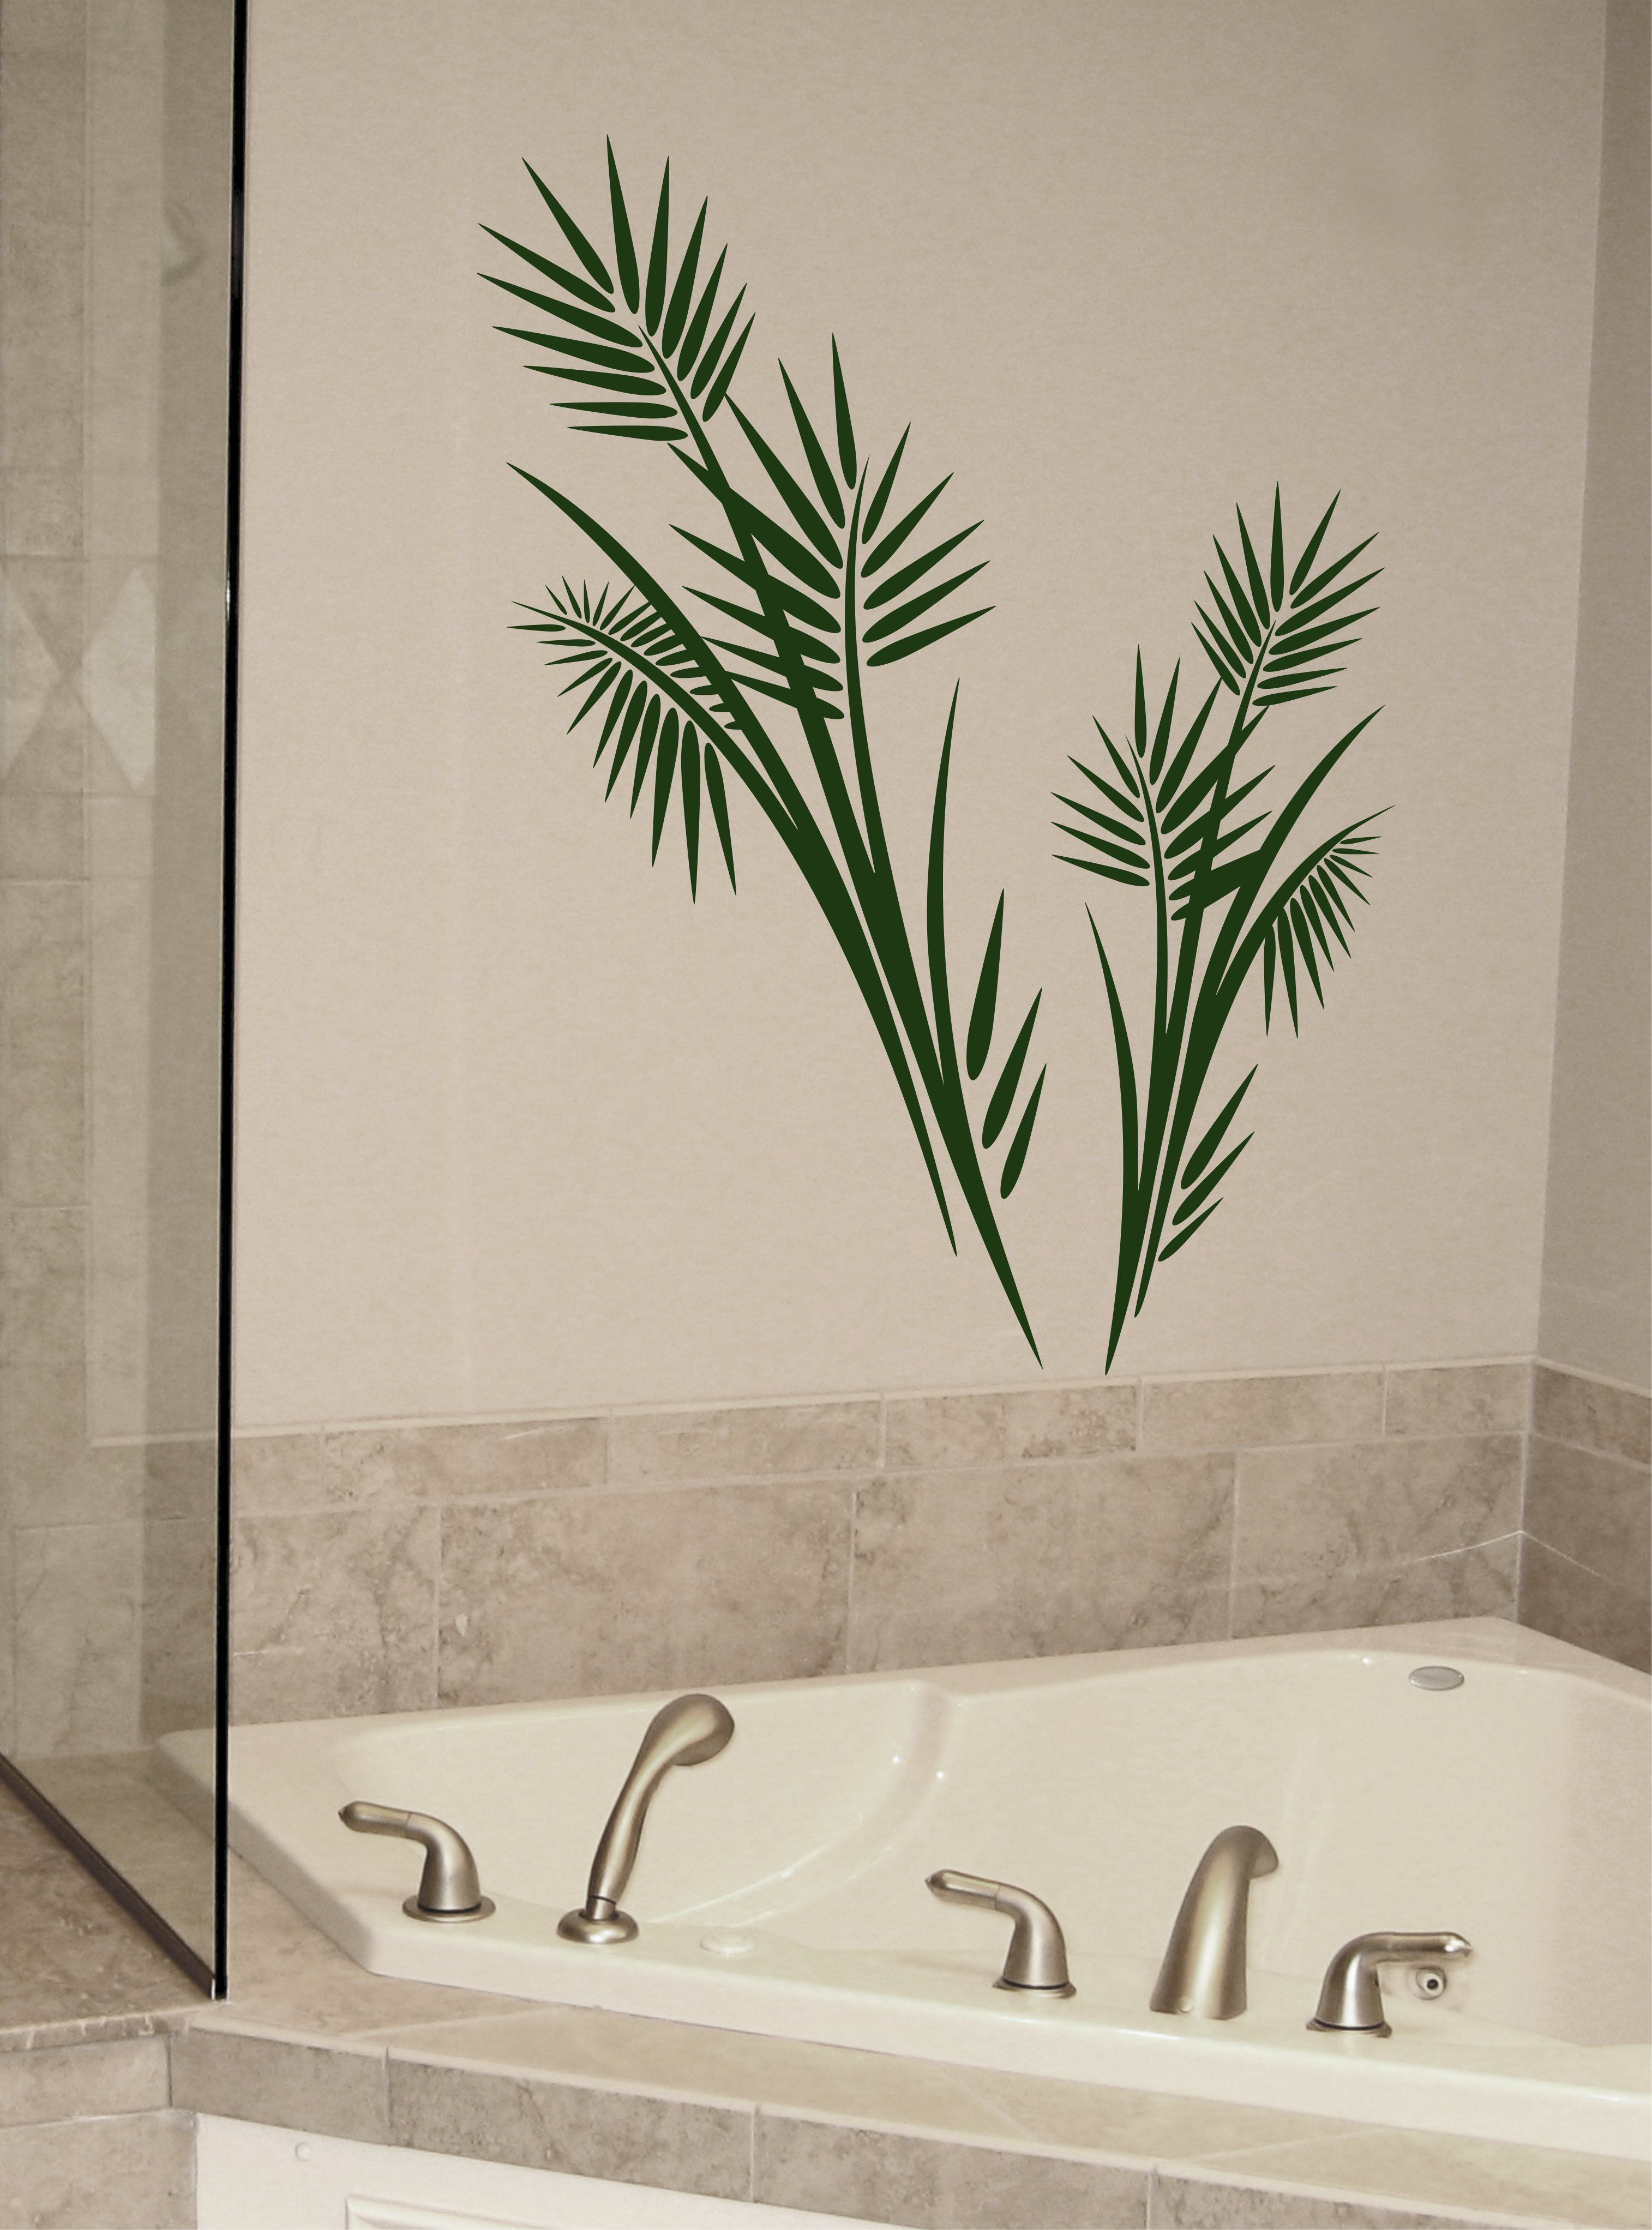 Large PALM TREE Wall Decal Vinyl   Tropical Wall Decor, Vinyl Frawn Leaves  Sticker From